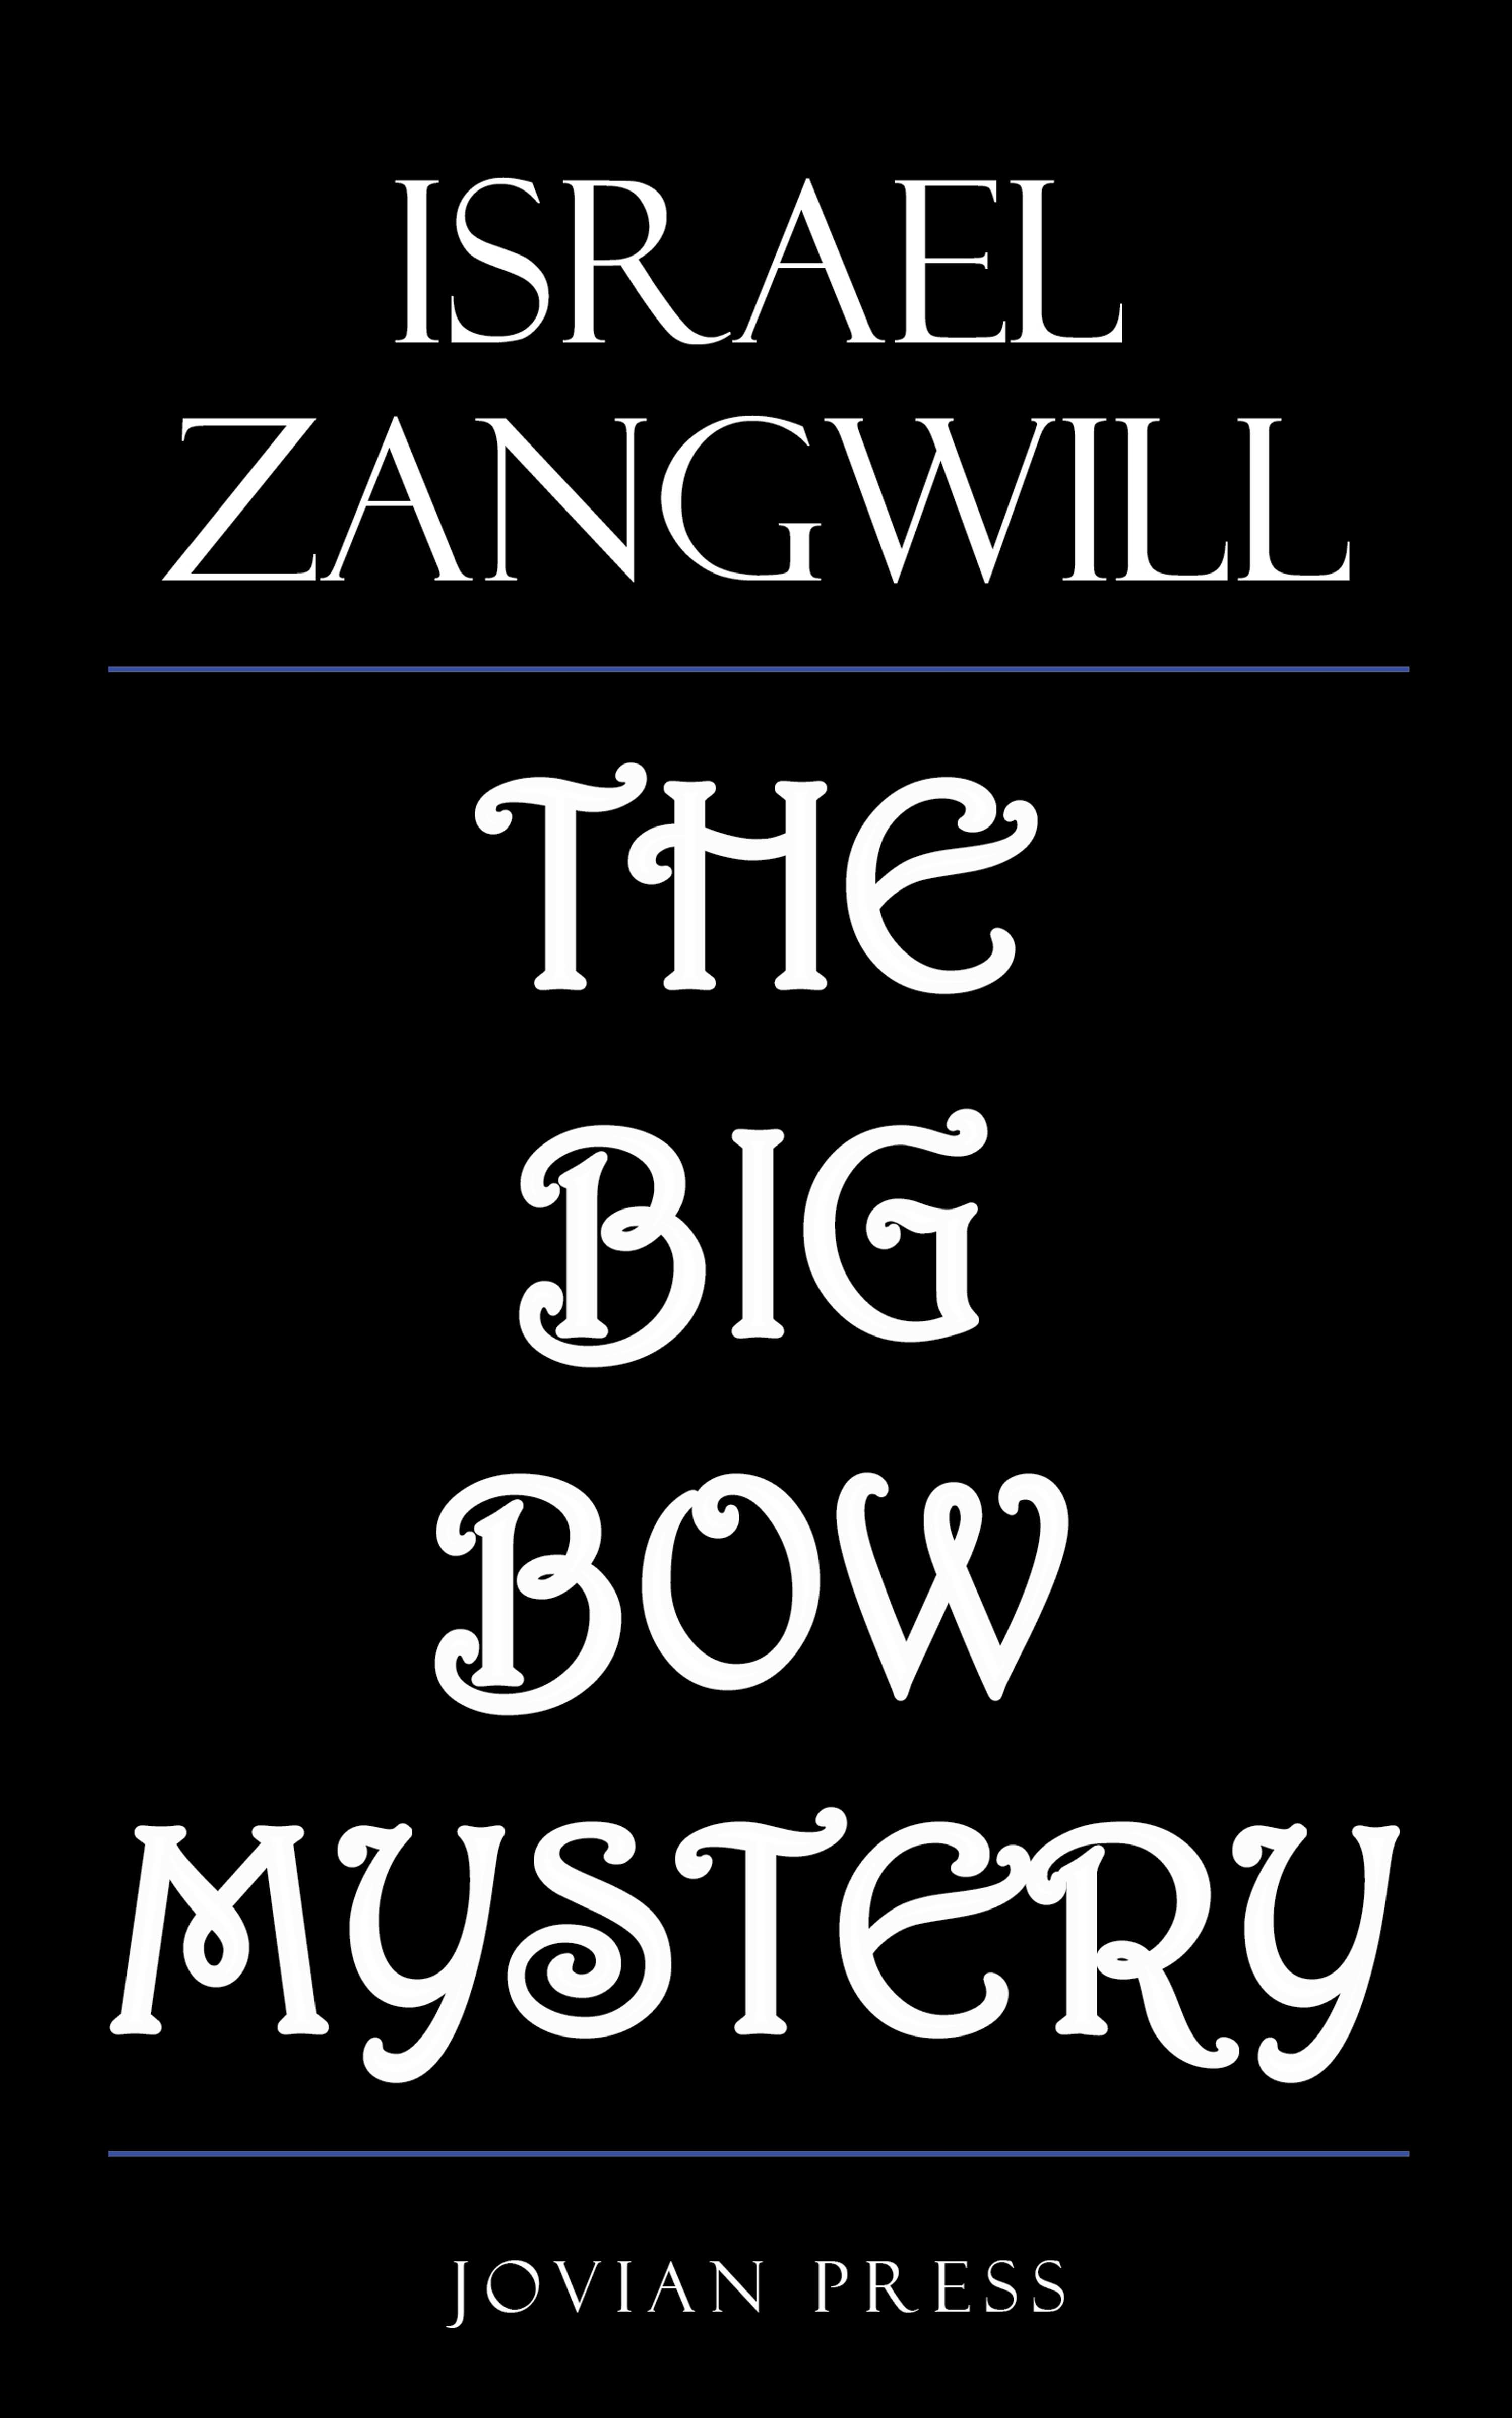 Israel Zangwill The Big Bow Mystery